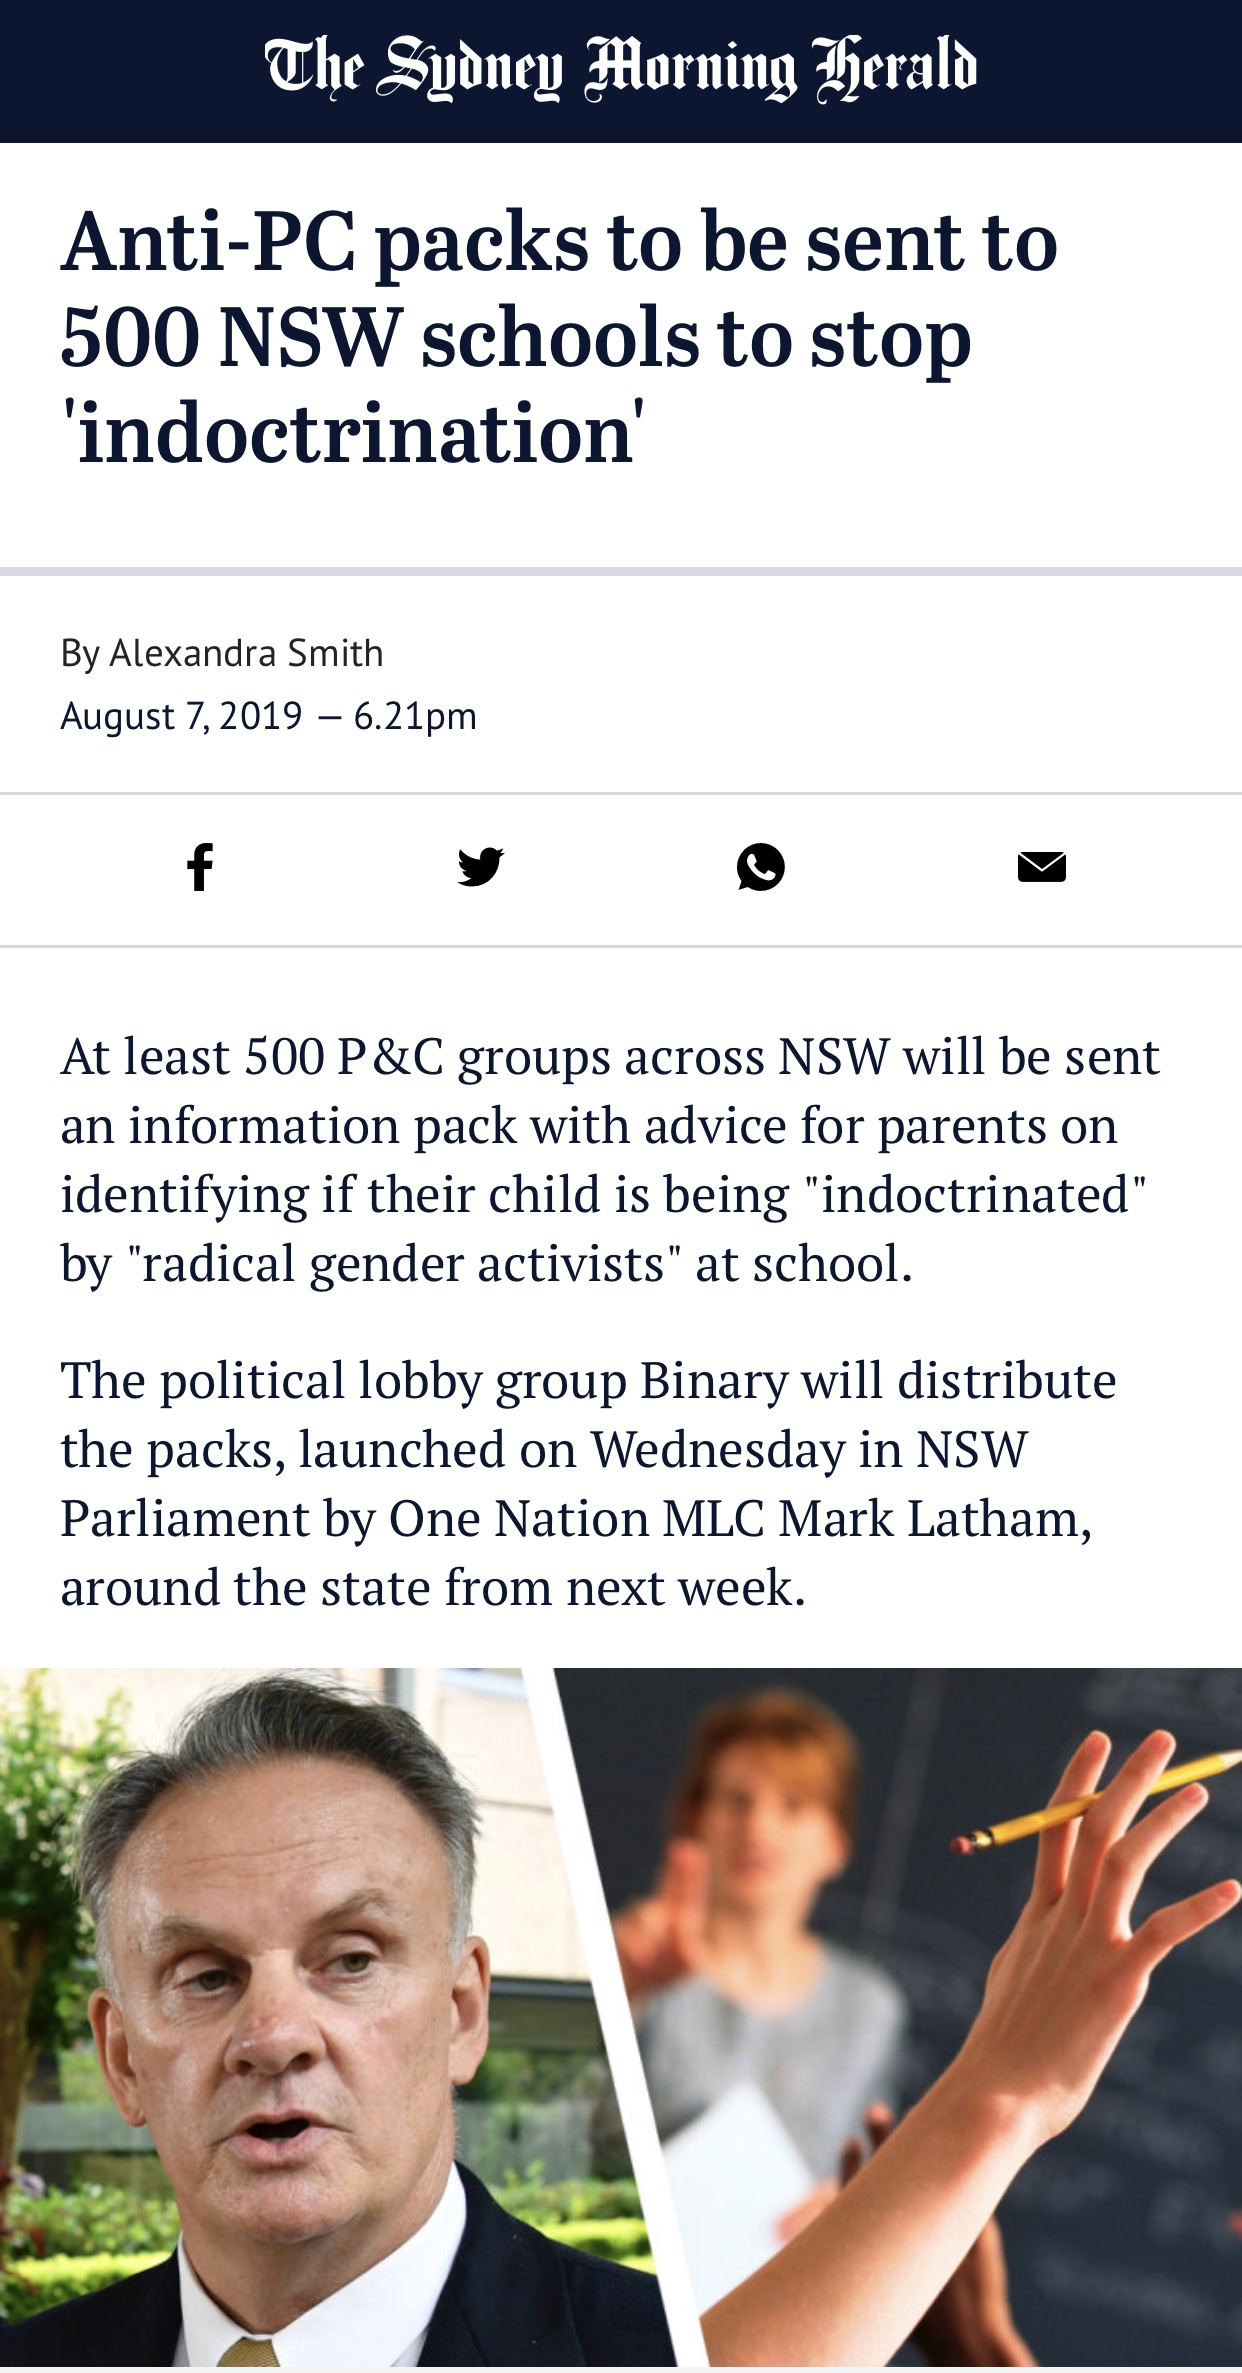 Anti-PC packs to be sent to 500 NSW schools to stop 'indoctrination'